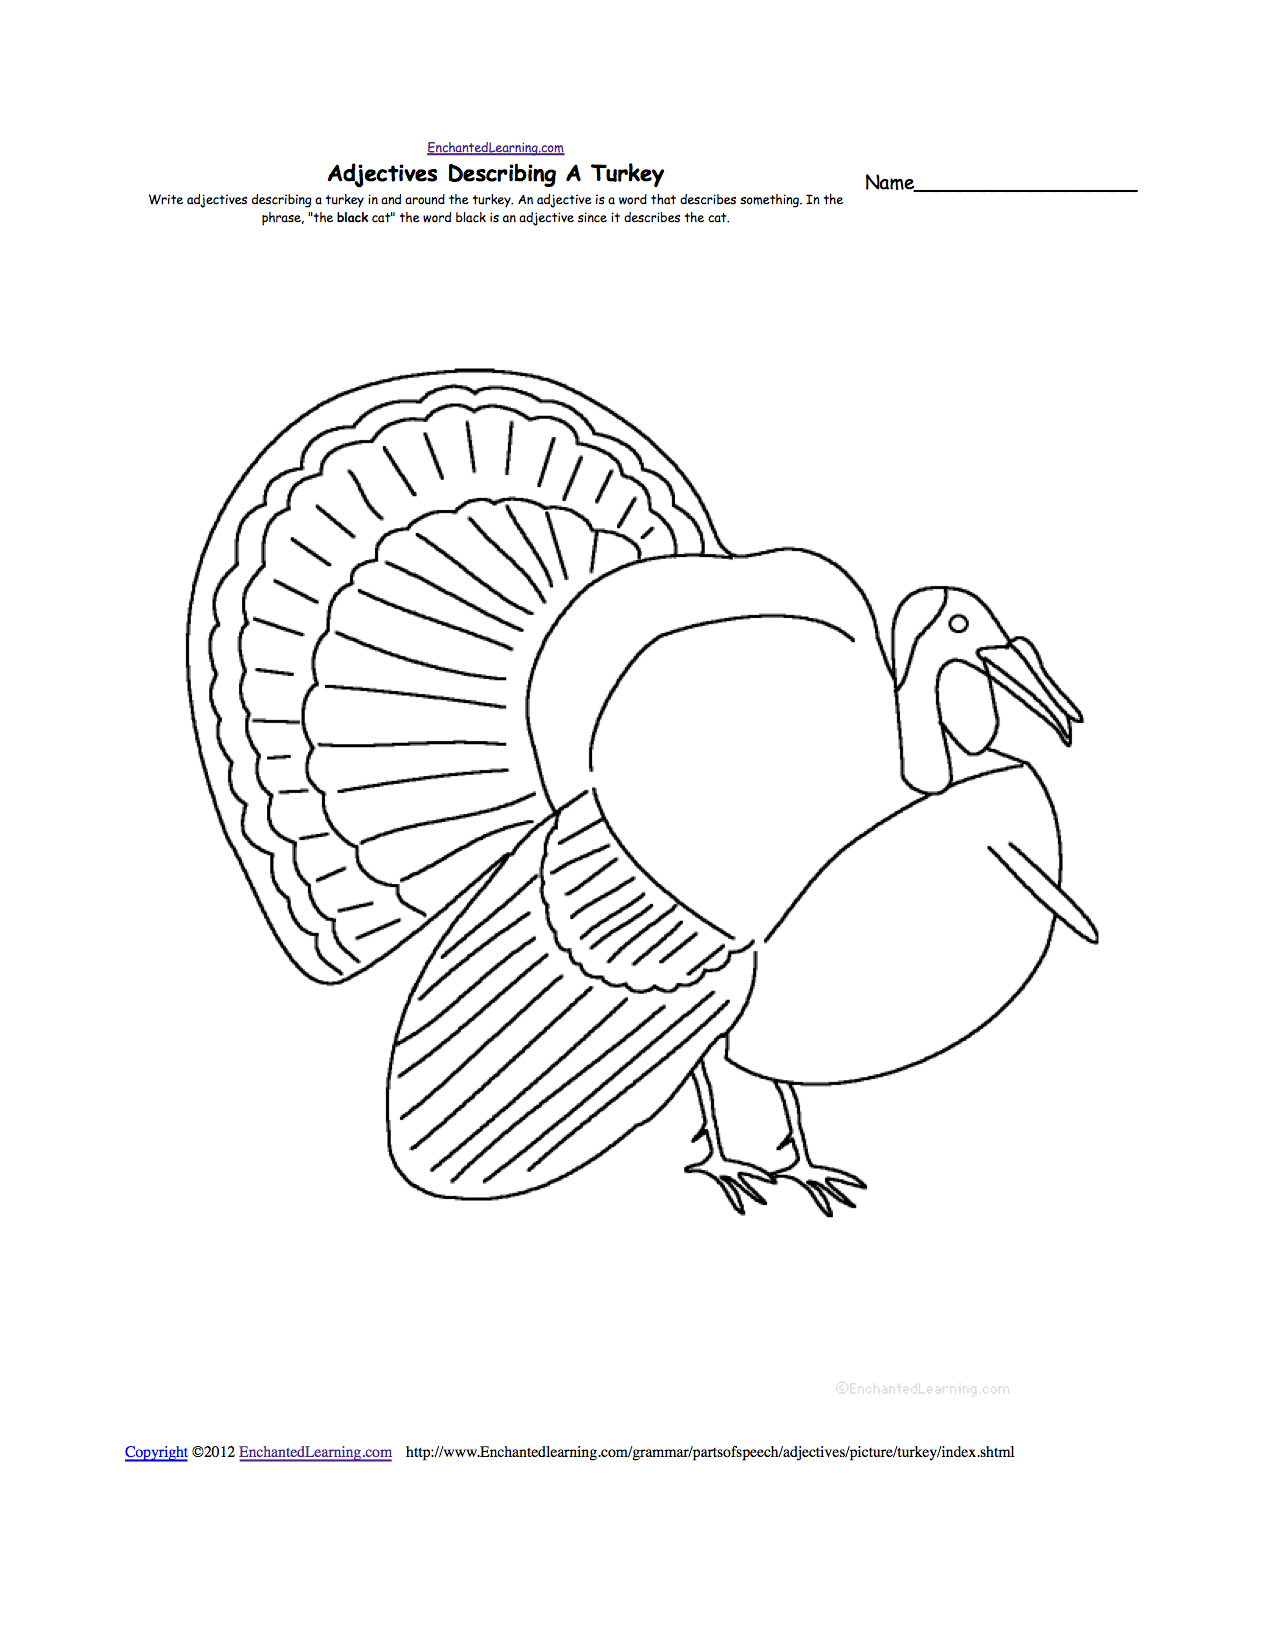 Uncategorized Why Did The Turkey Cross The Road Math Worksheet turkeys at enchantedlearning com adjectives describing a turkey